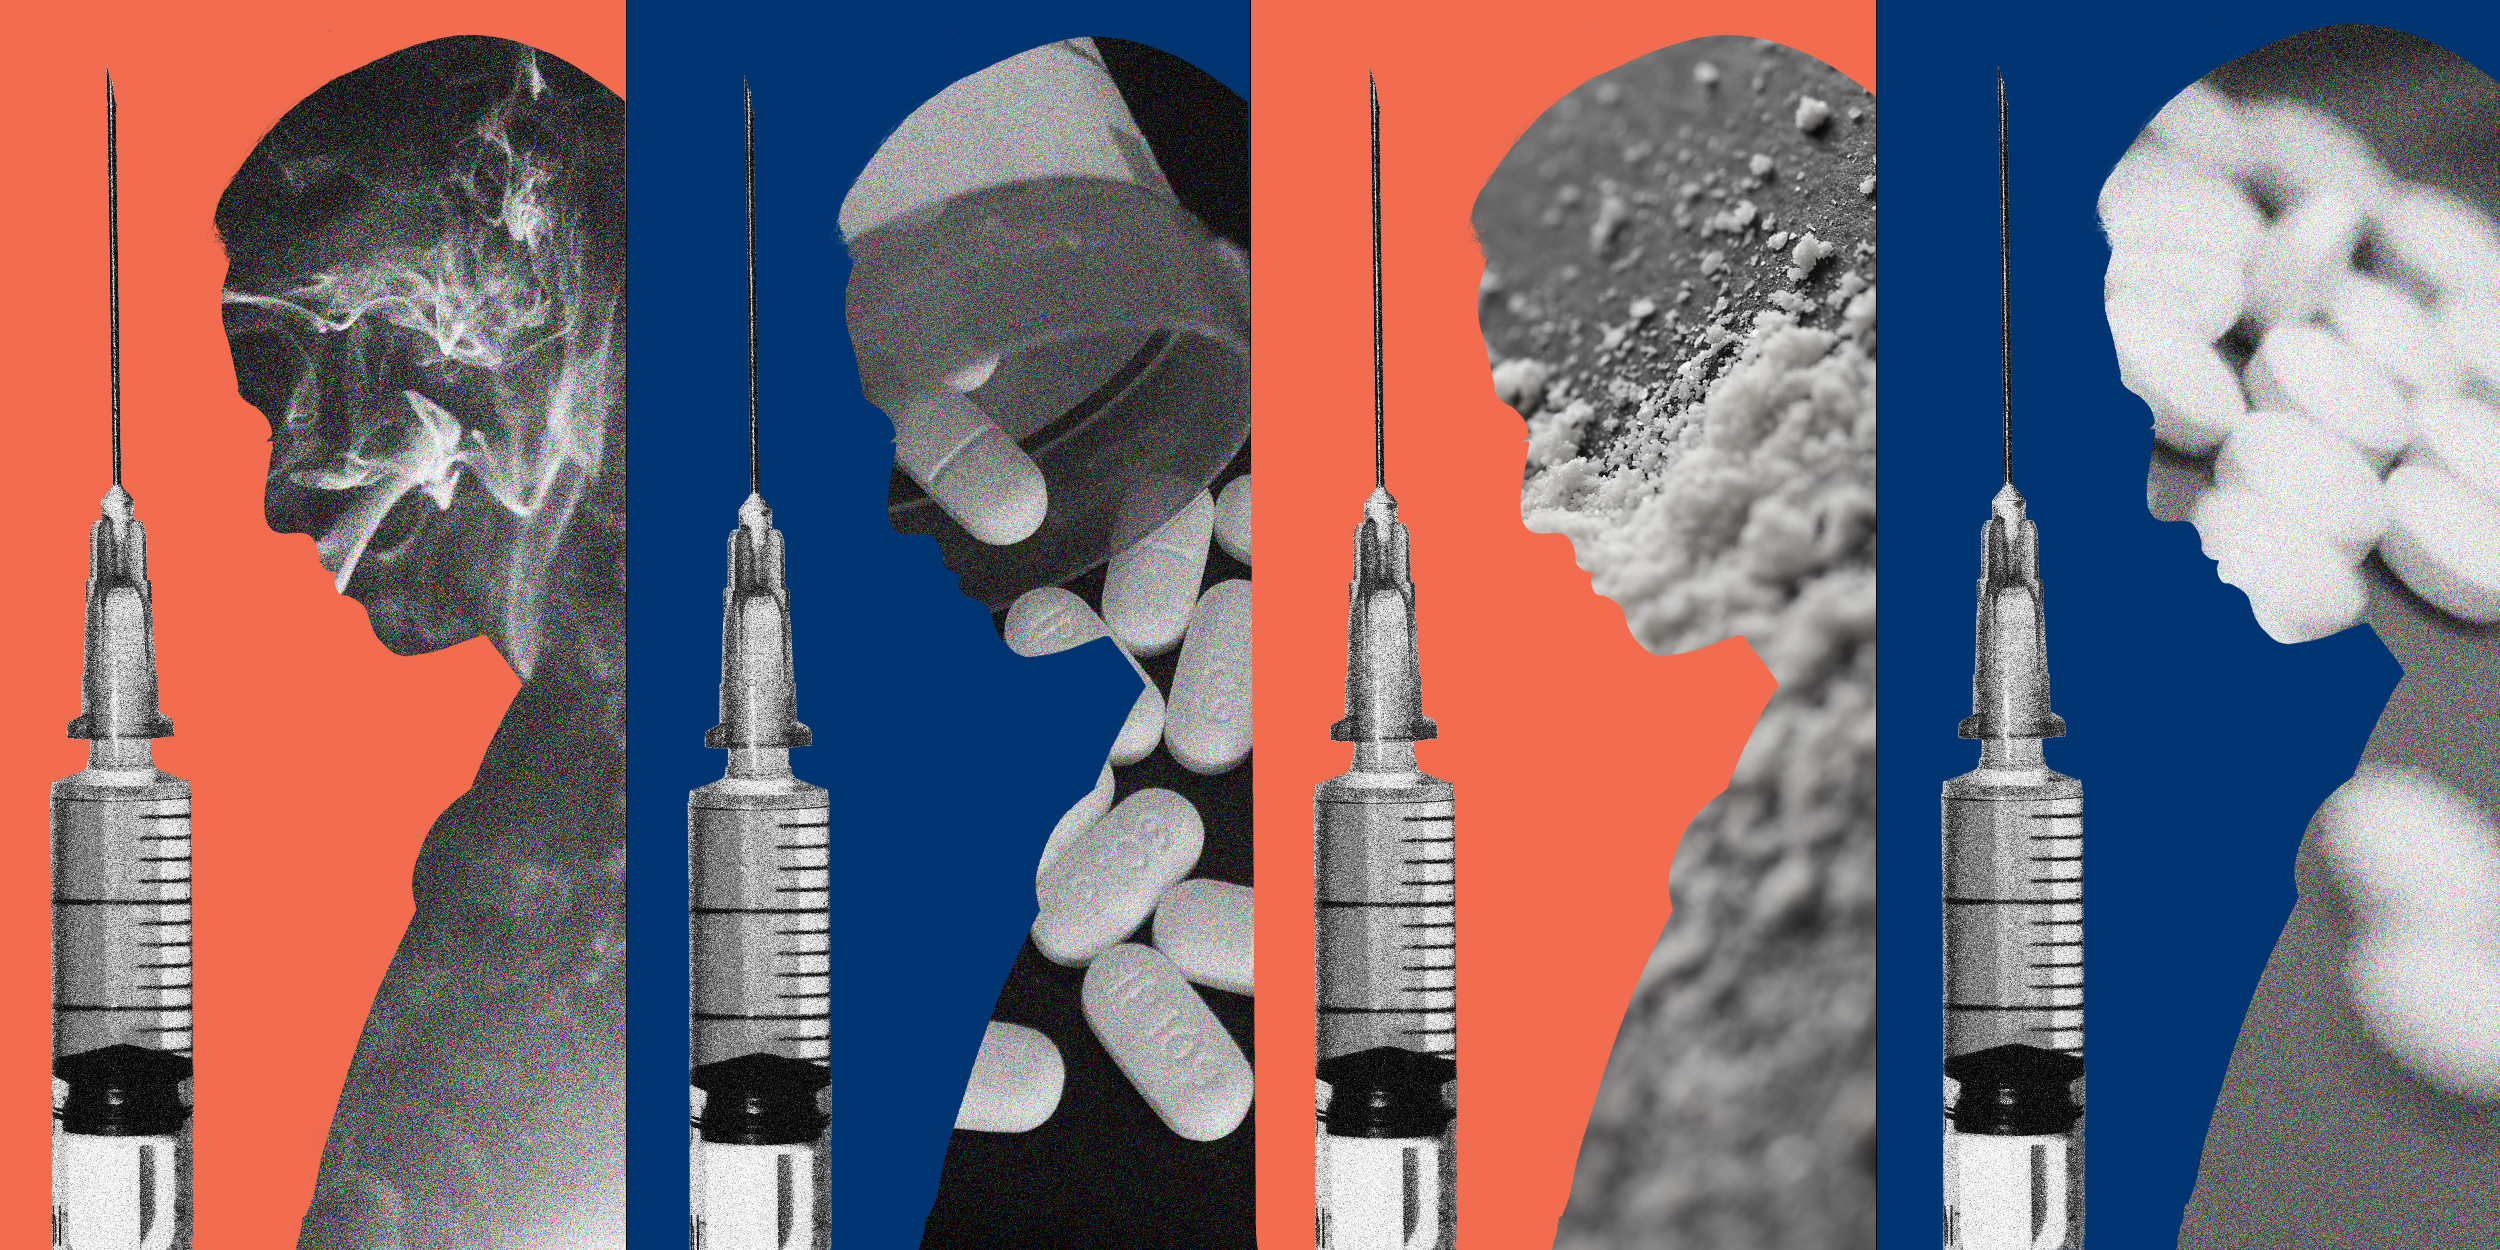 Scientists eye opioid vaccine as a shot to stem overdose epidemic